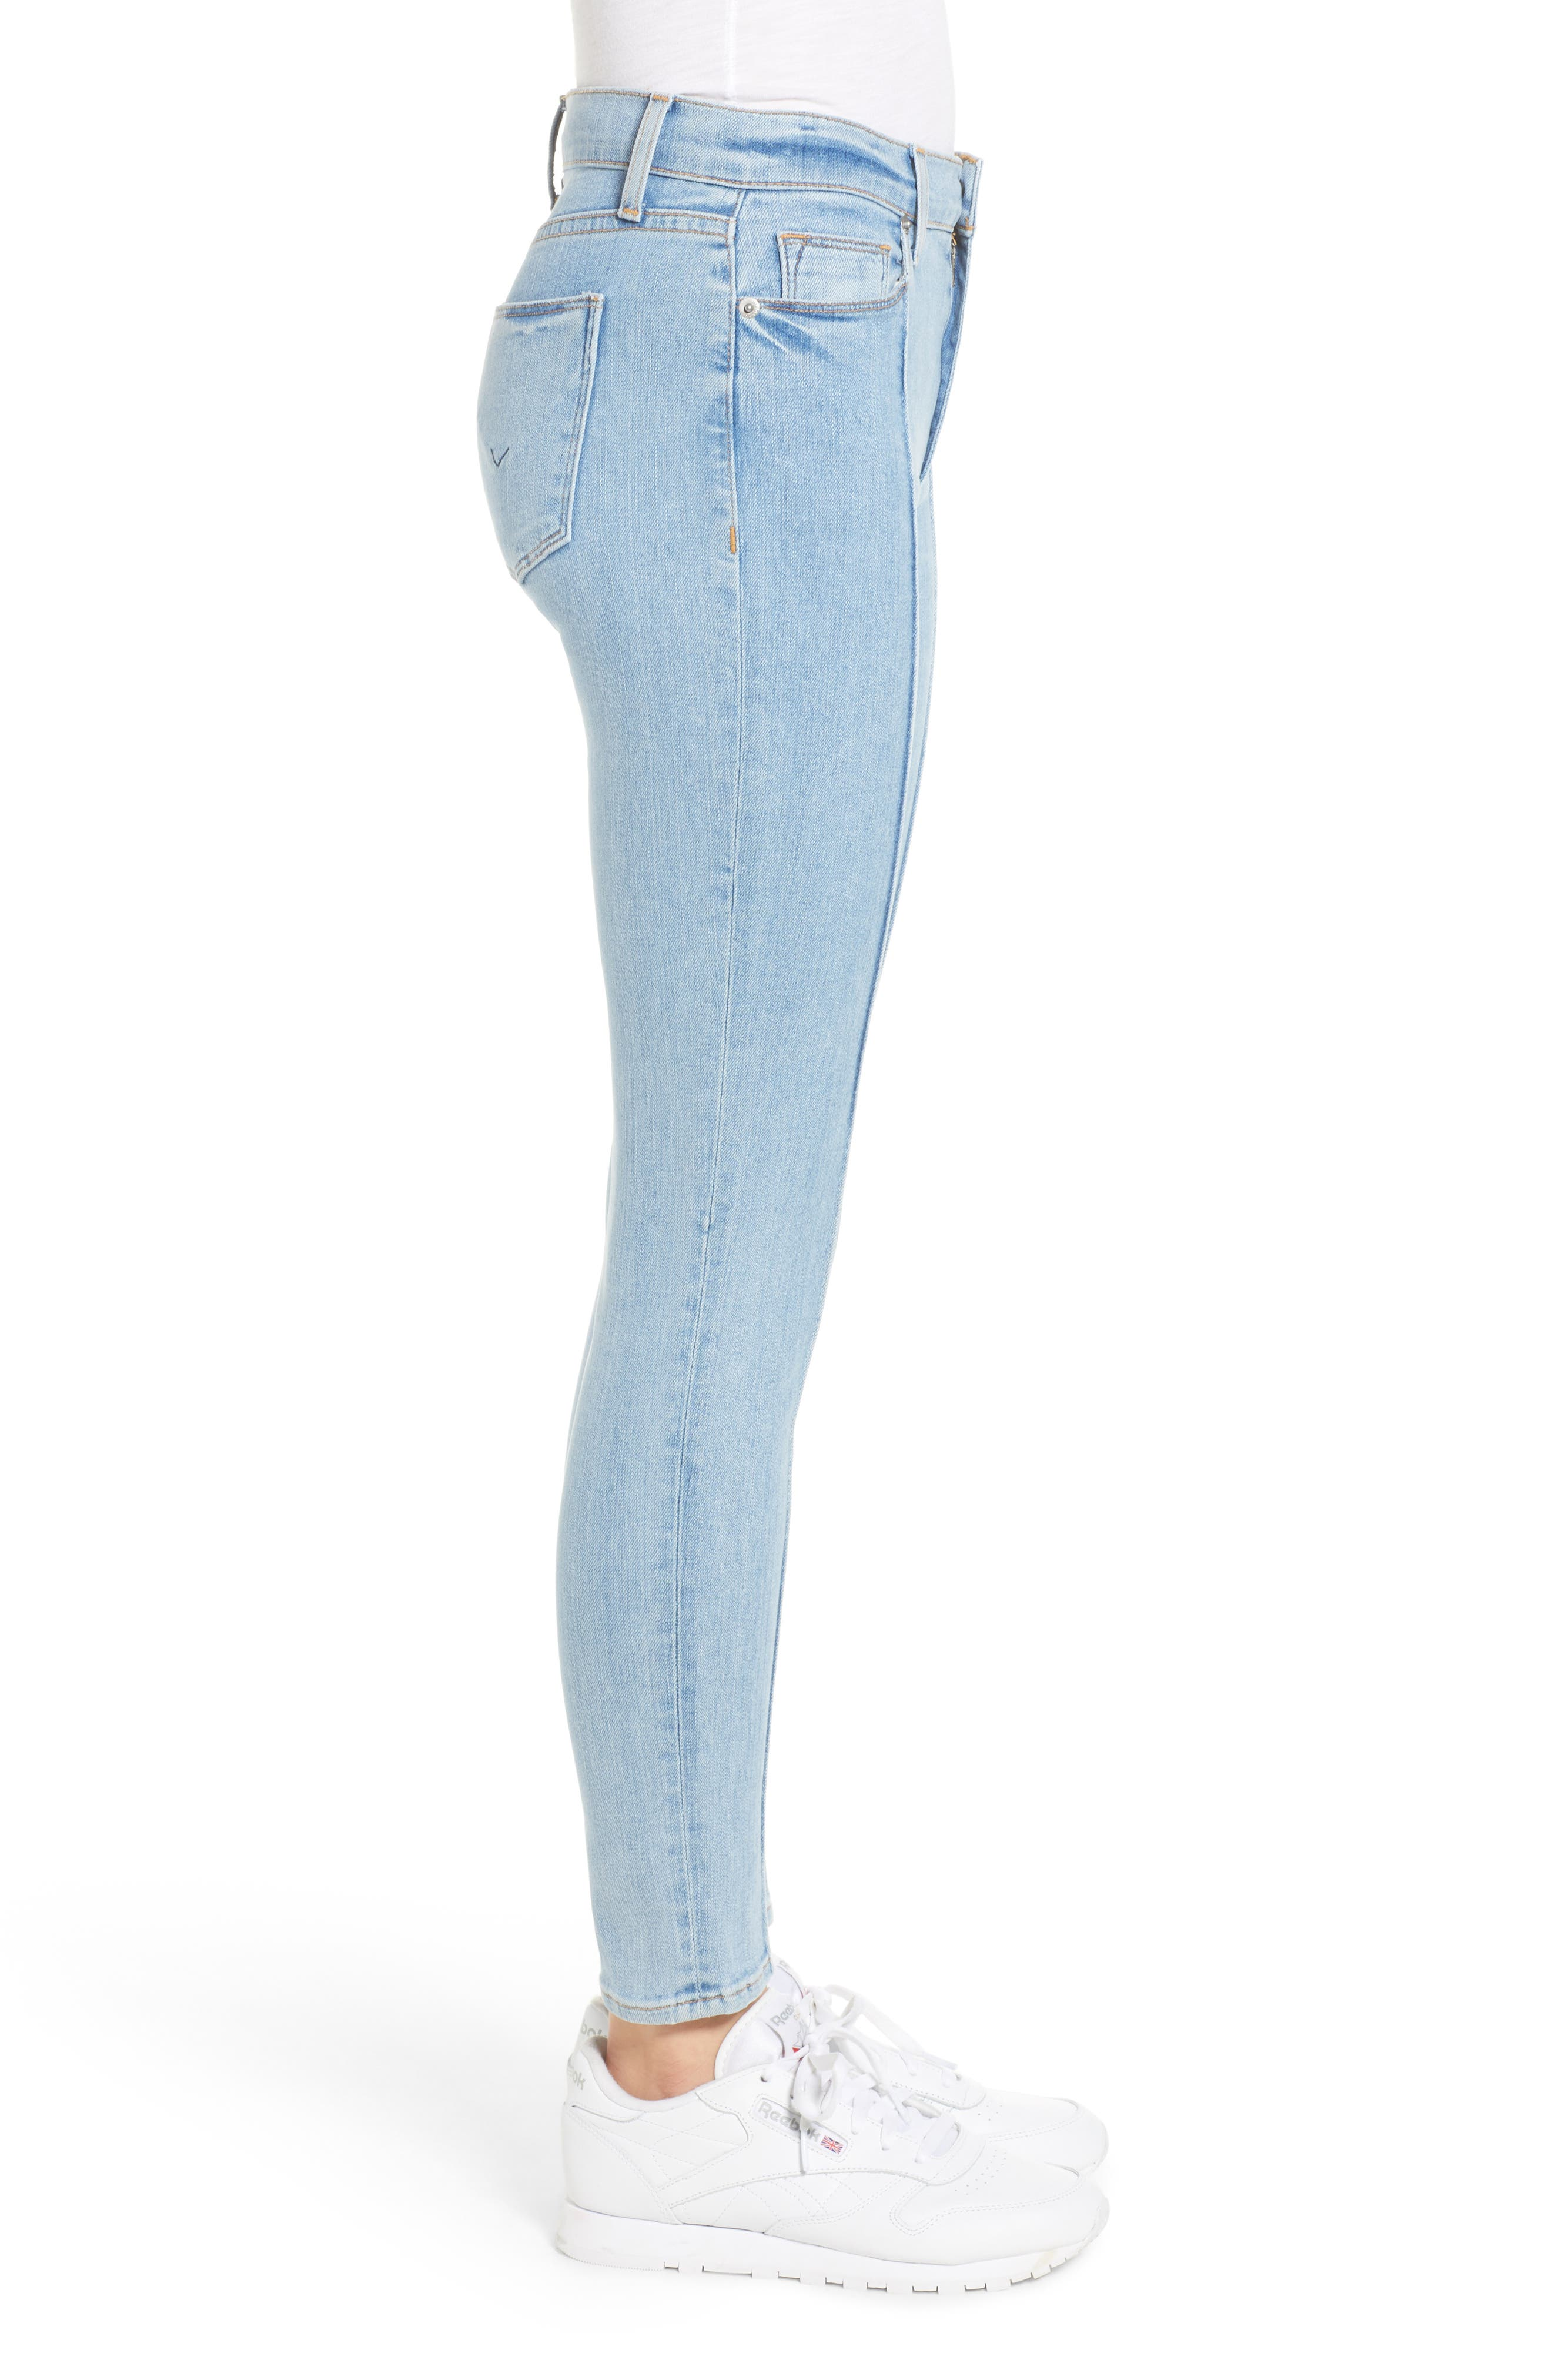 Barbara High Waist Super Skinny Jeans,                             Alternate thumbnail 3, color,                             450